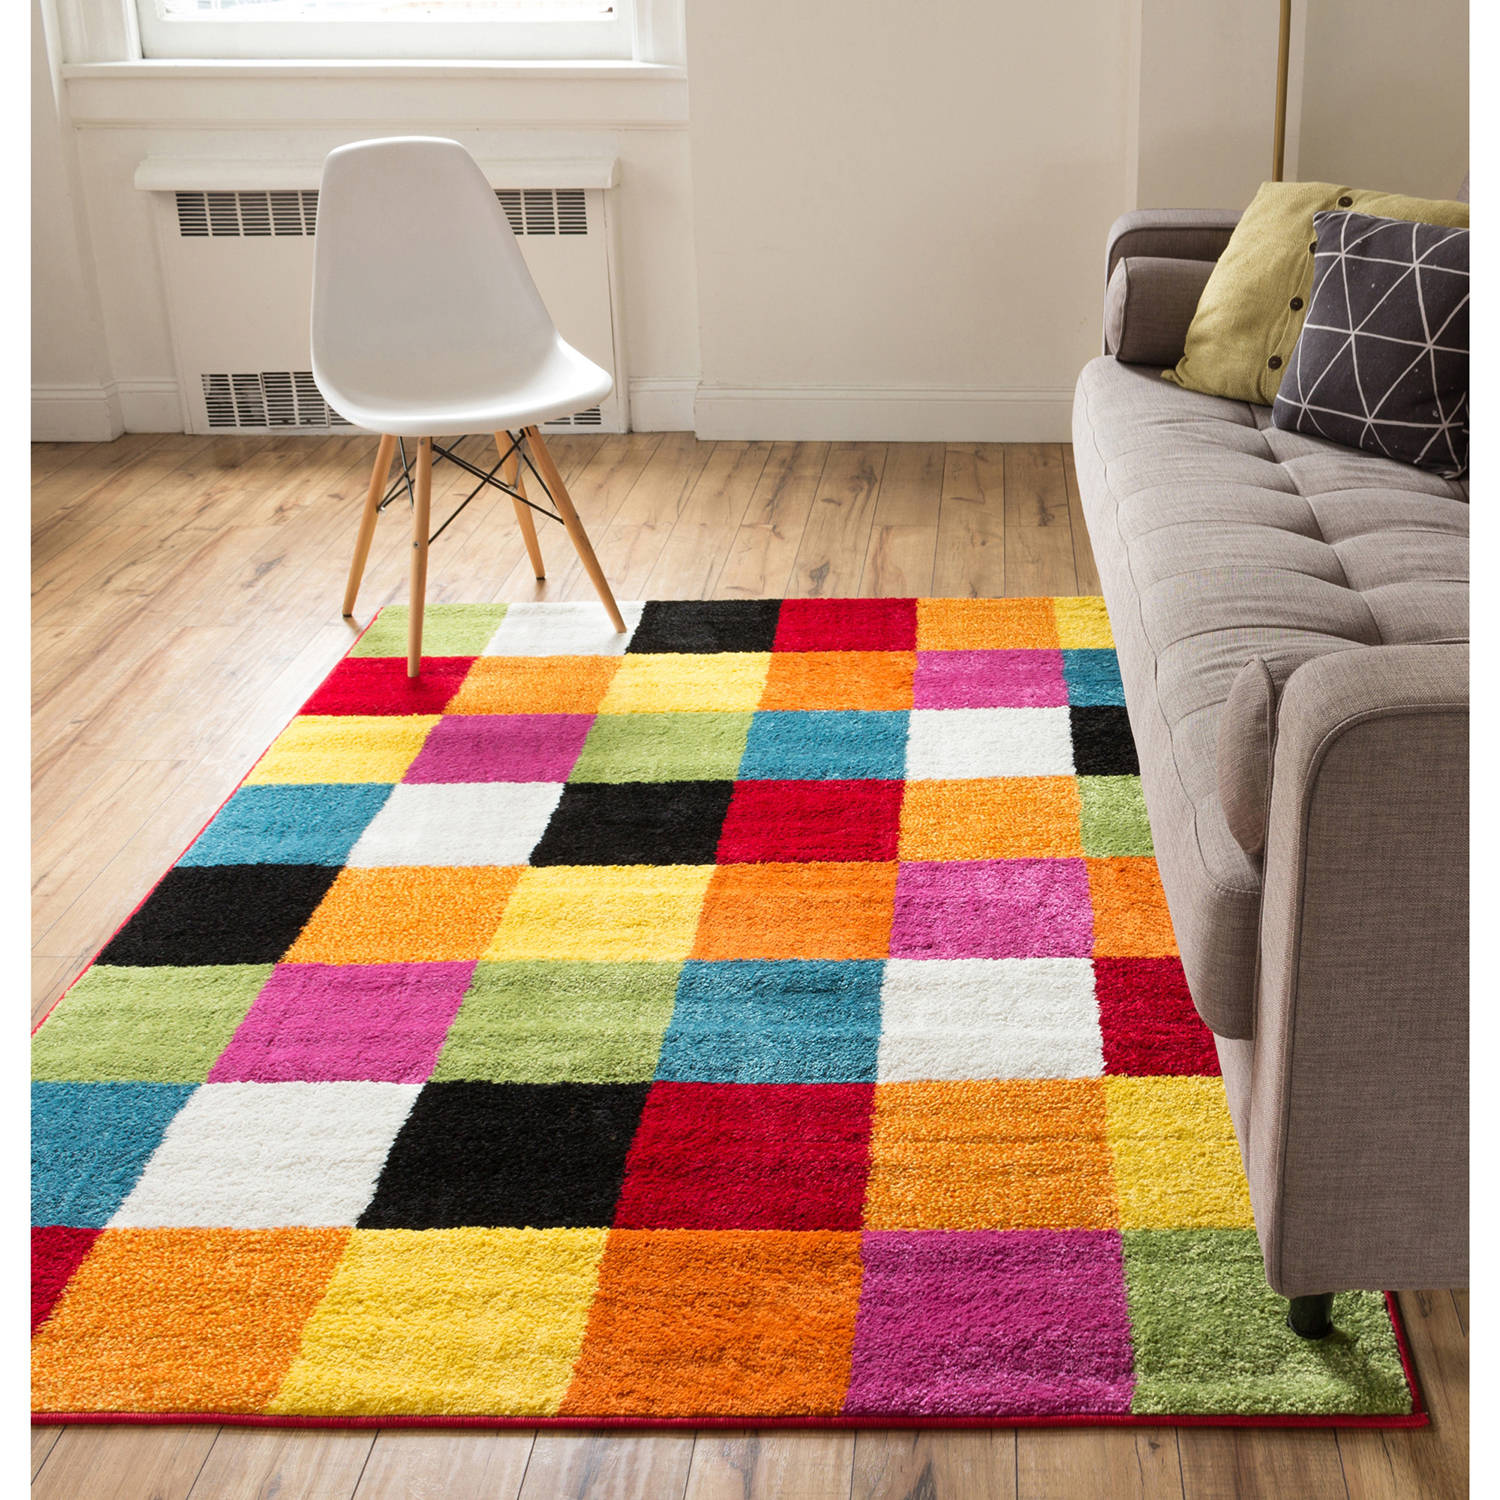 ^ Well Woven StarBright Bright Square Kids rea/unner ug, Multi ...